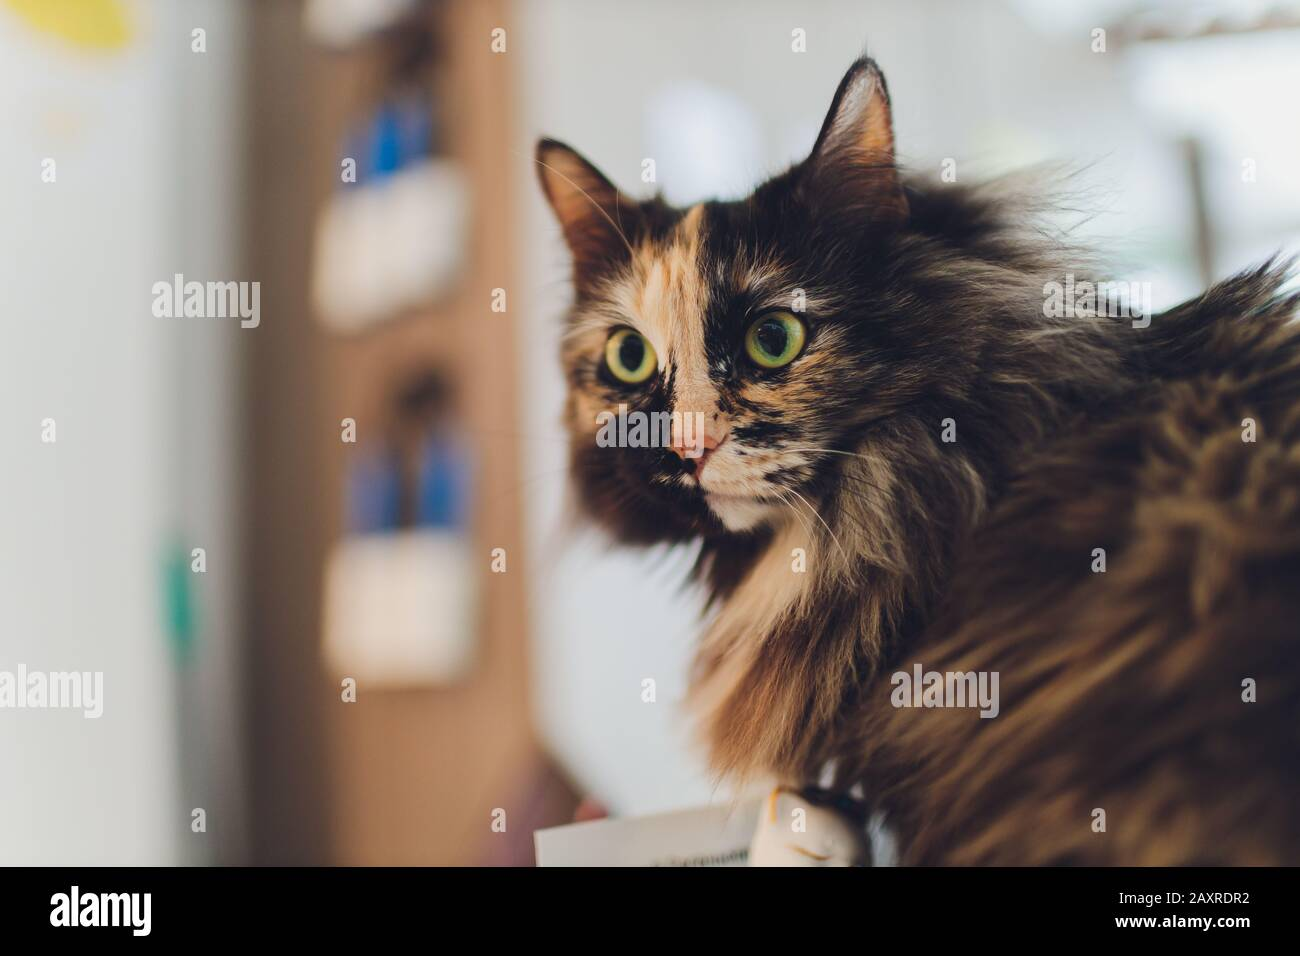 Kitten, resting cat on a flor in colorful blur background, cute funny cat close up, young playful cat at home, domestic, relaxing, resting,playing at Stock Photo